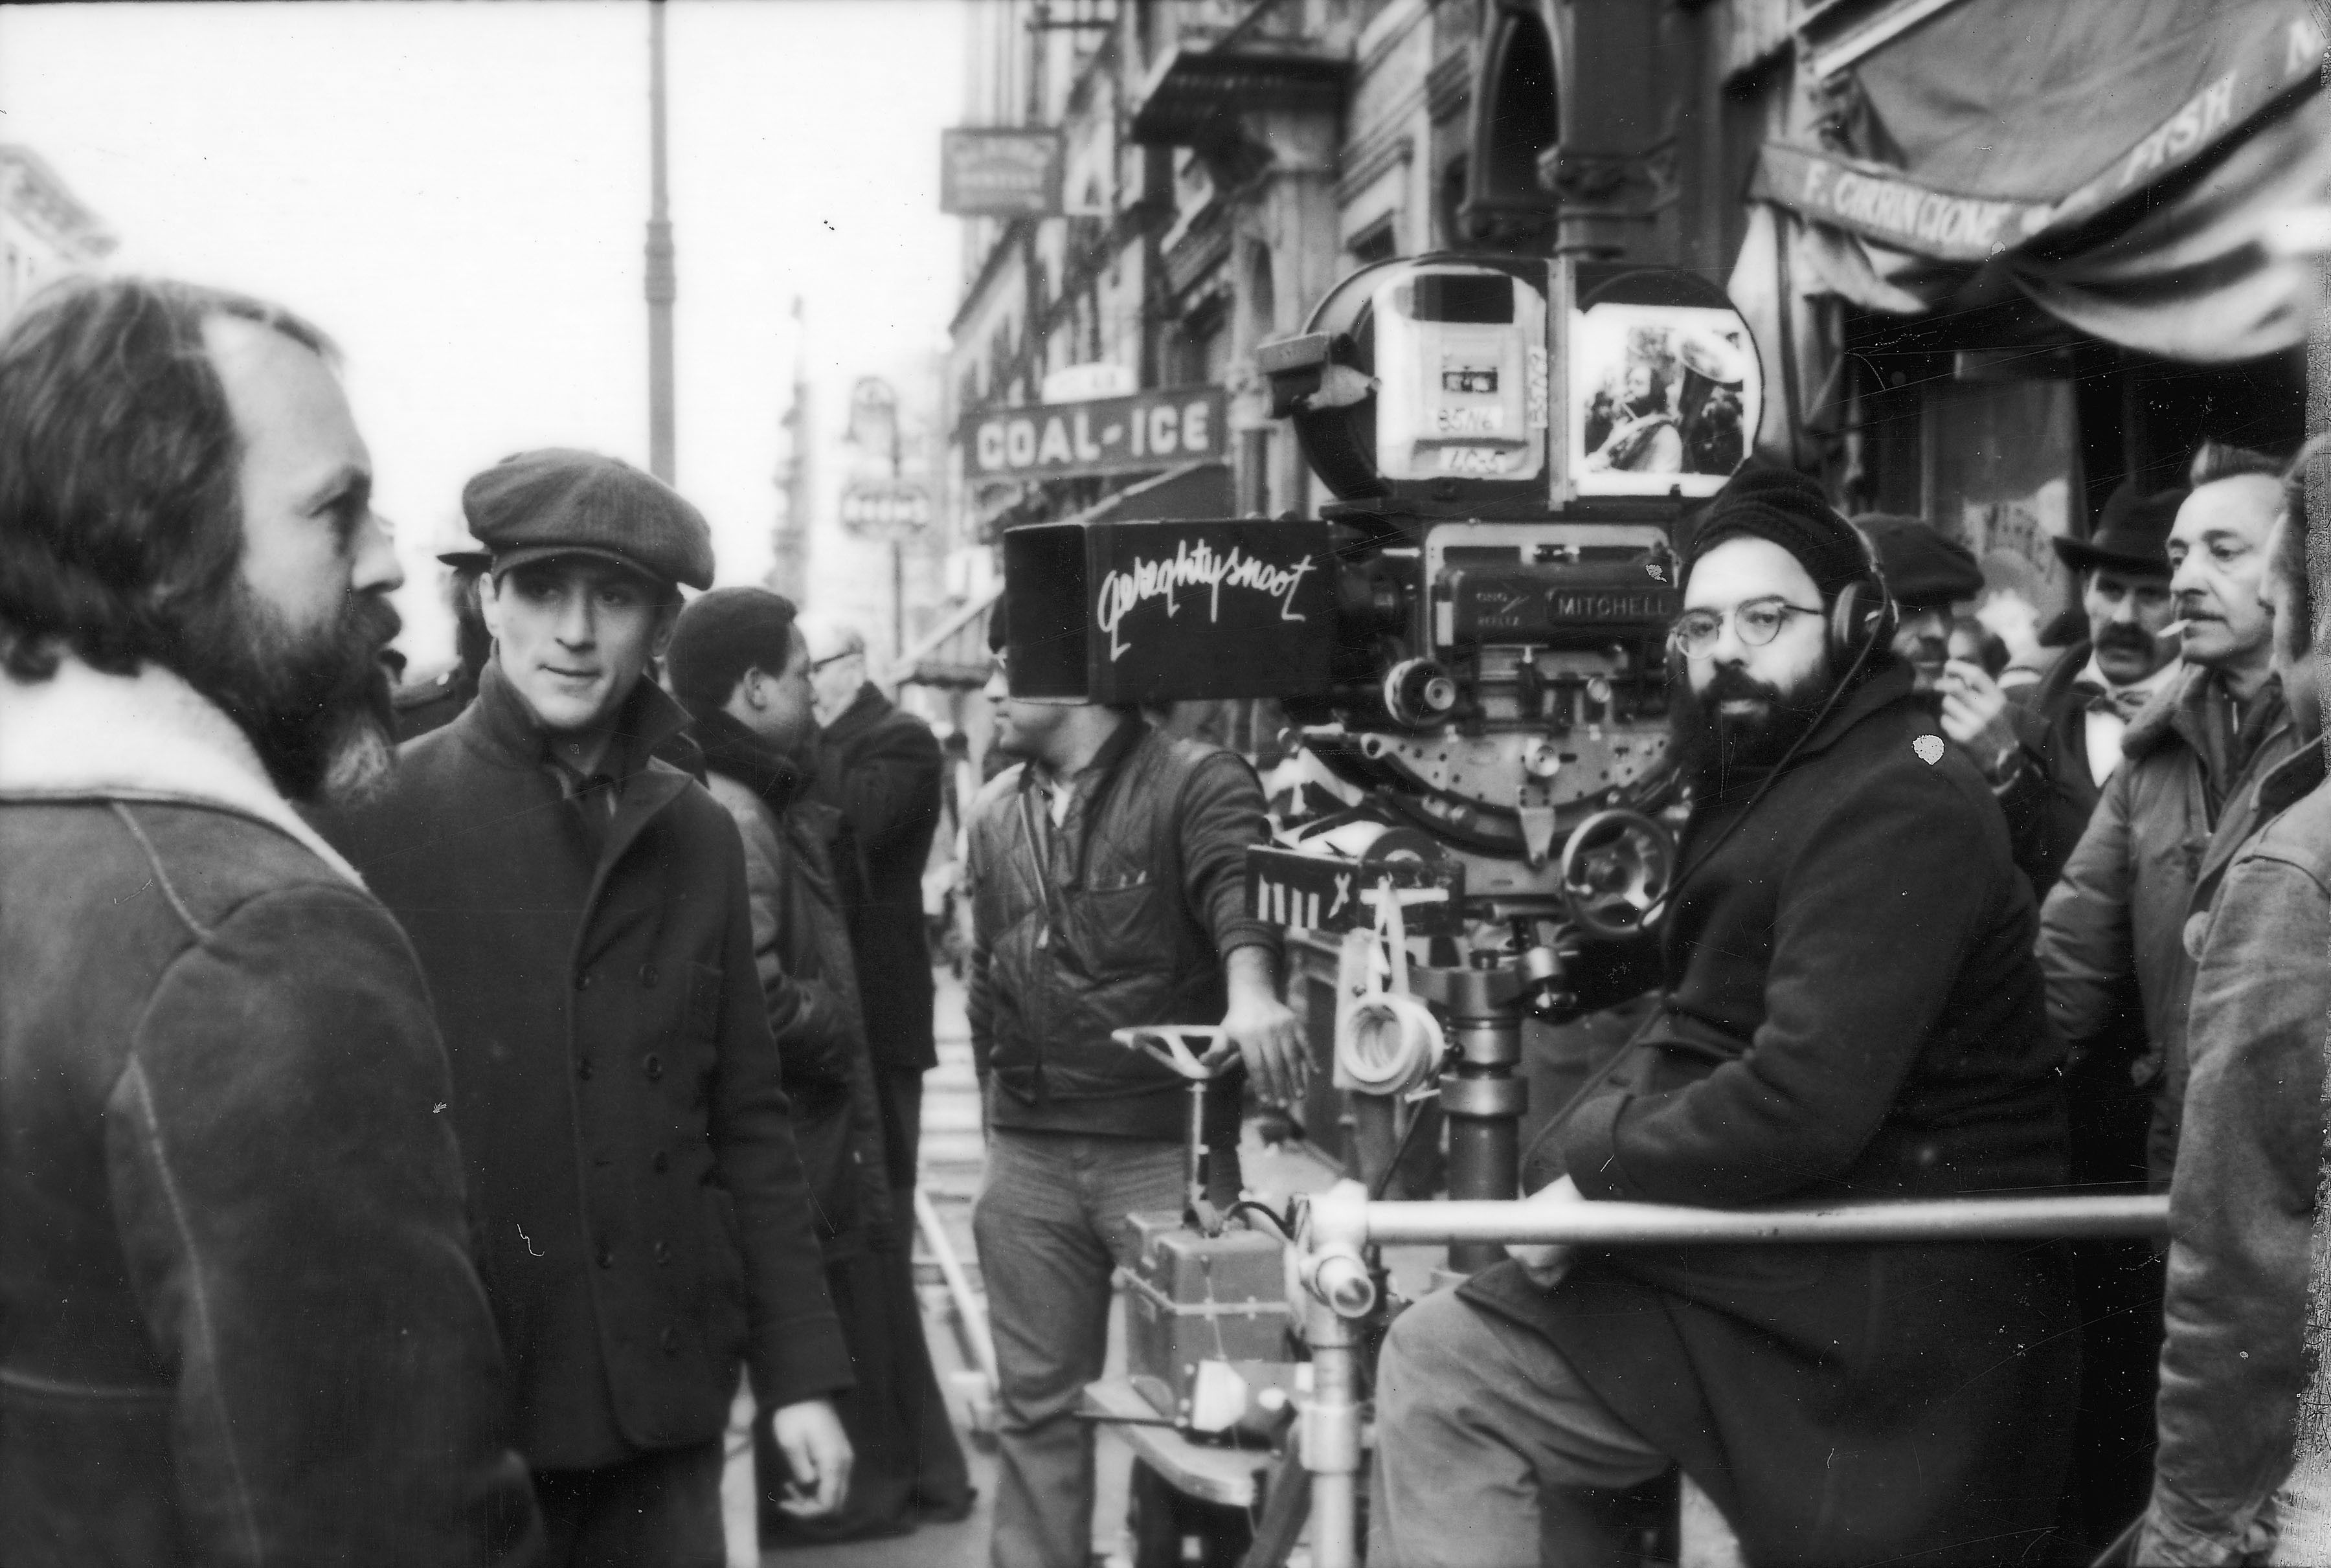 42 Behind-the-Scenes Photos From the Set of The Godfather Trilogy